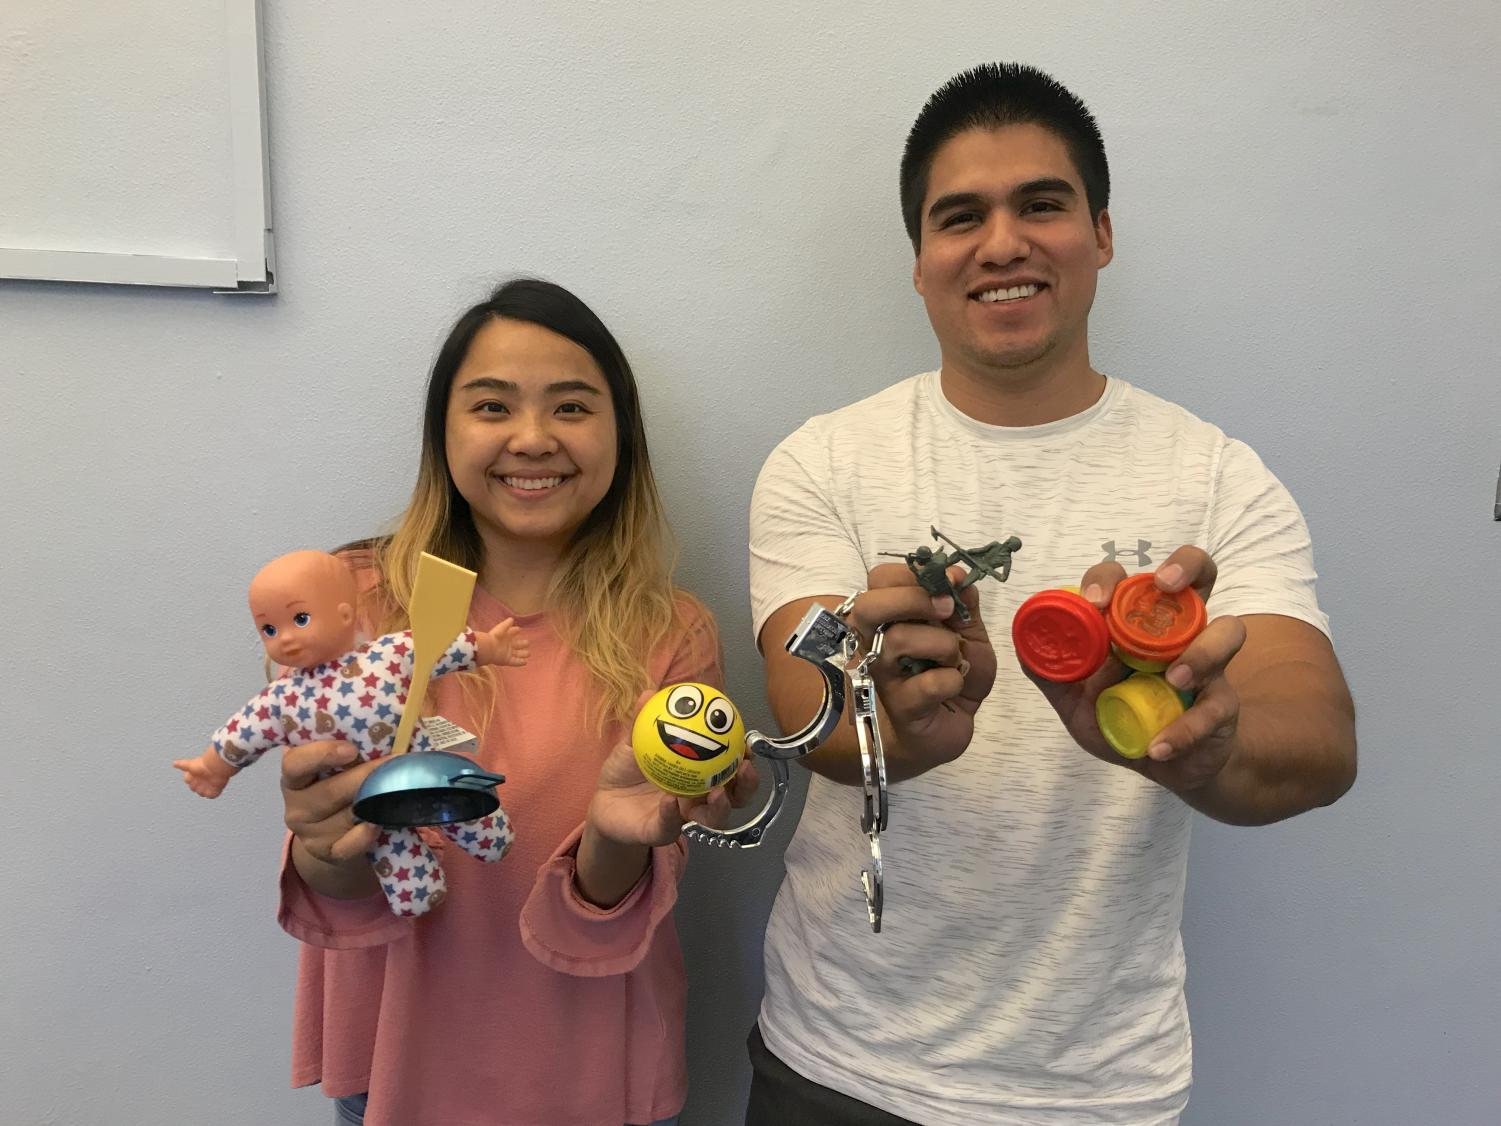 Bao Vang (left) and Humberto Ramirez (right) are graduate students in the counseling program at Sac State learning how to apply play therapy with children.